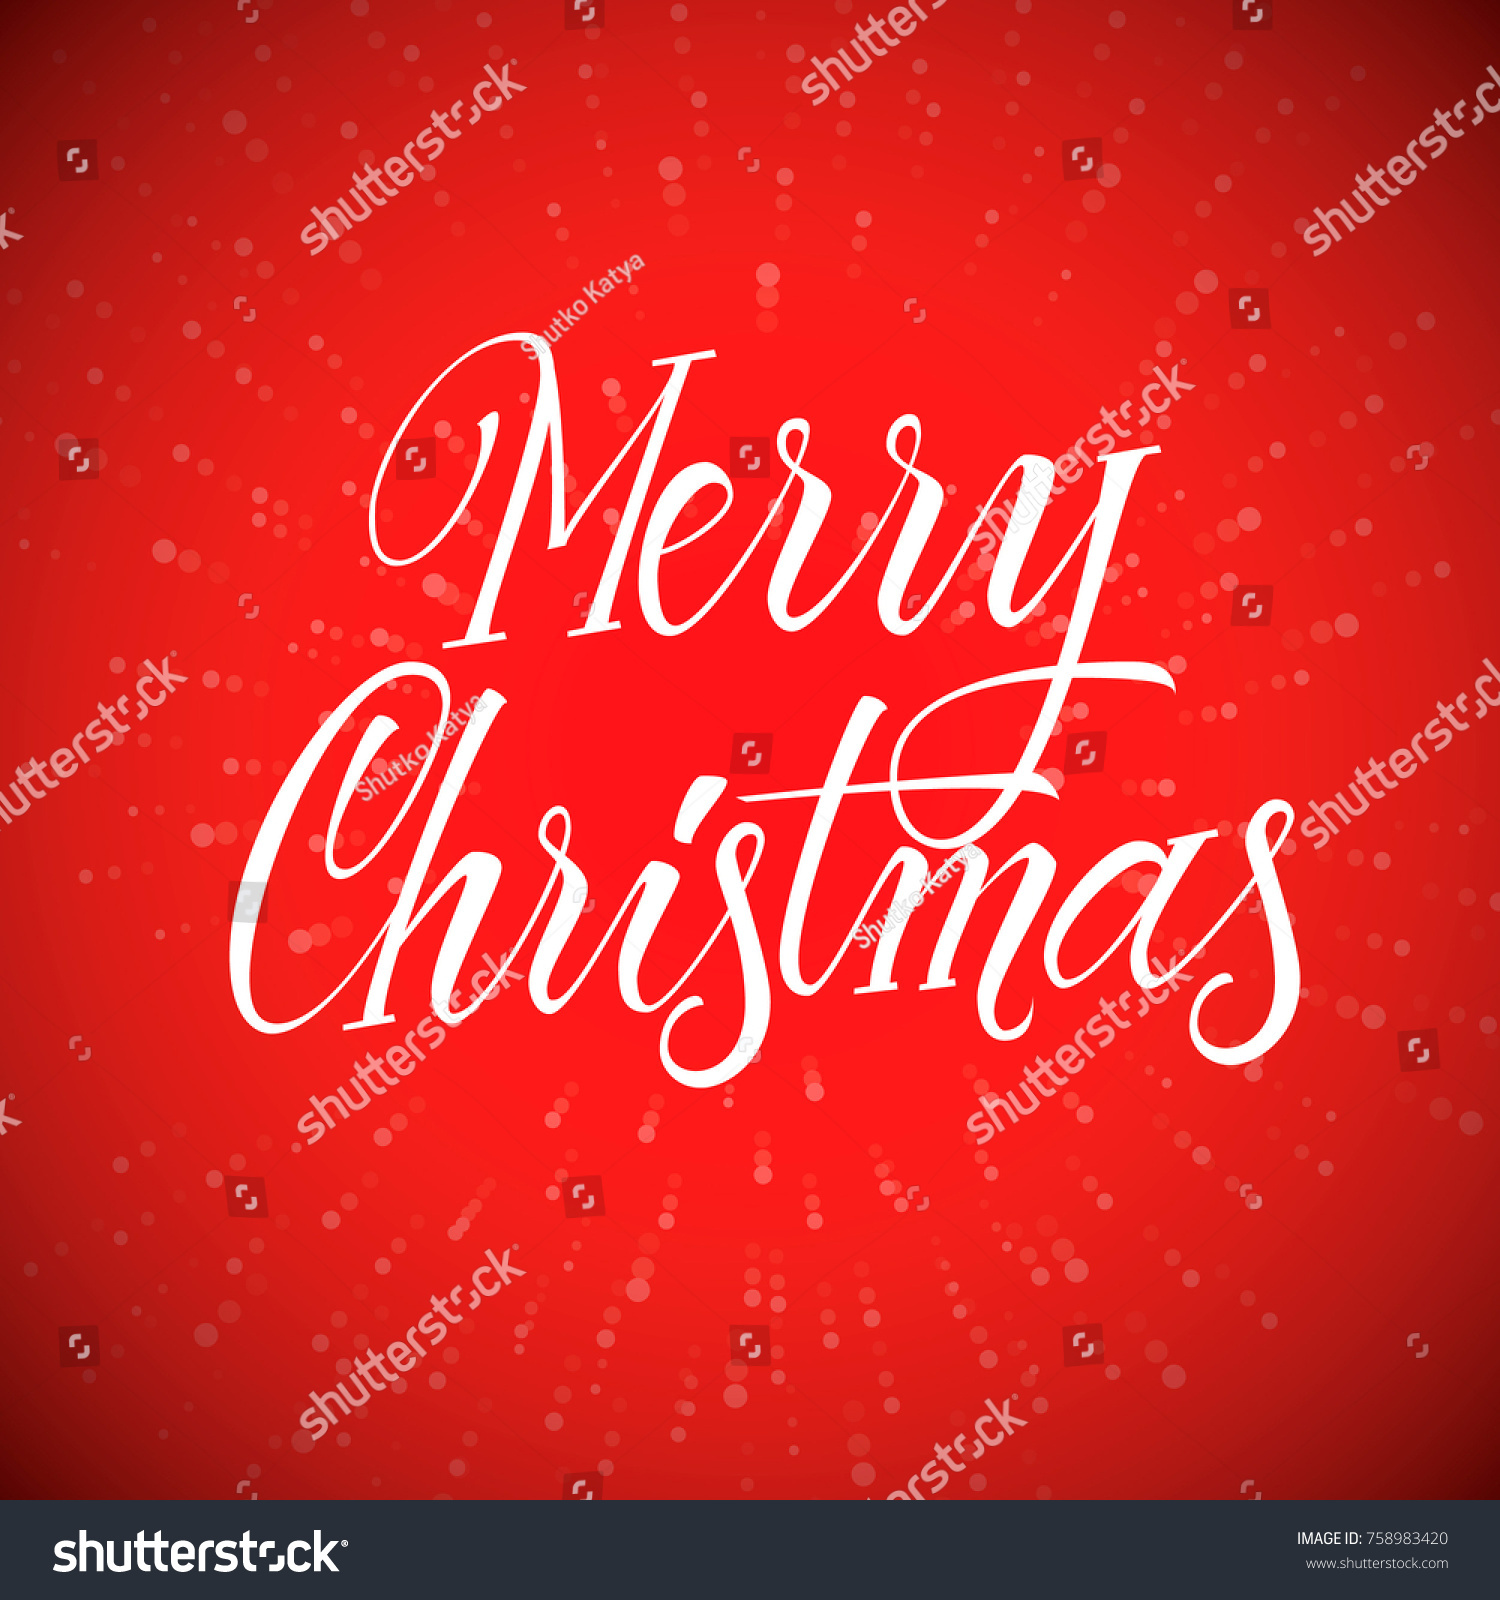 Merry Christmas Calligraphy For Greeting Card Lettering Vector